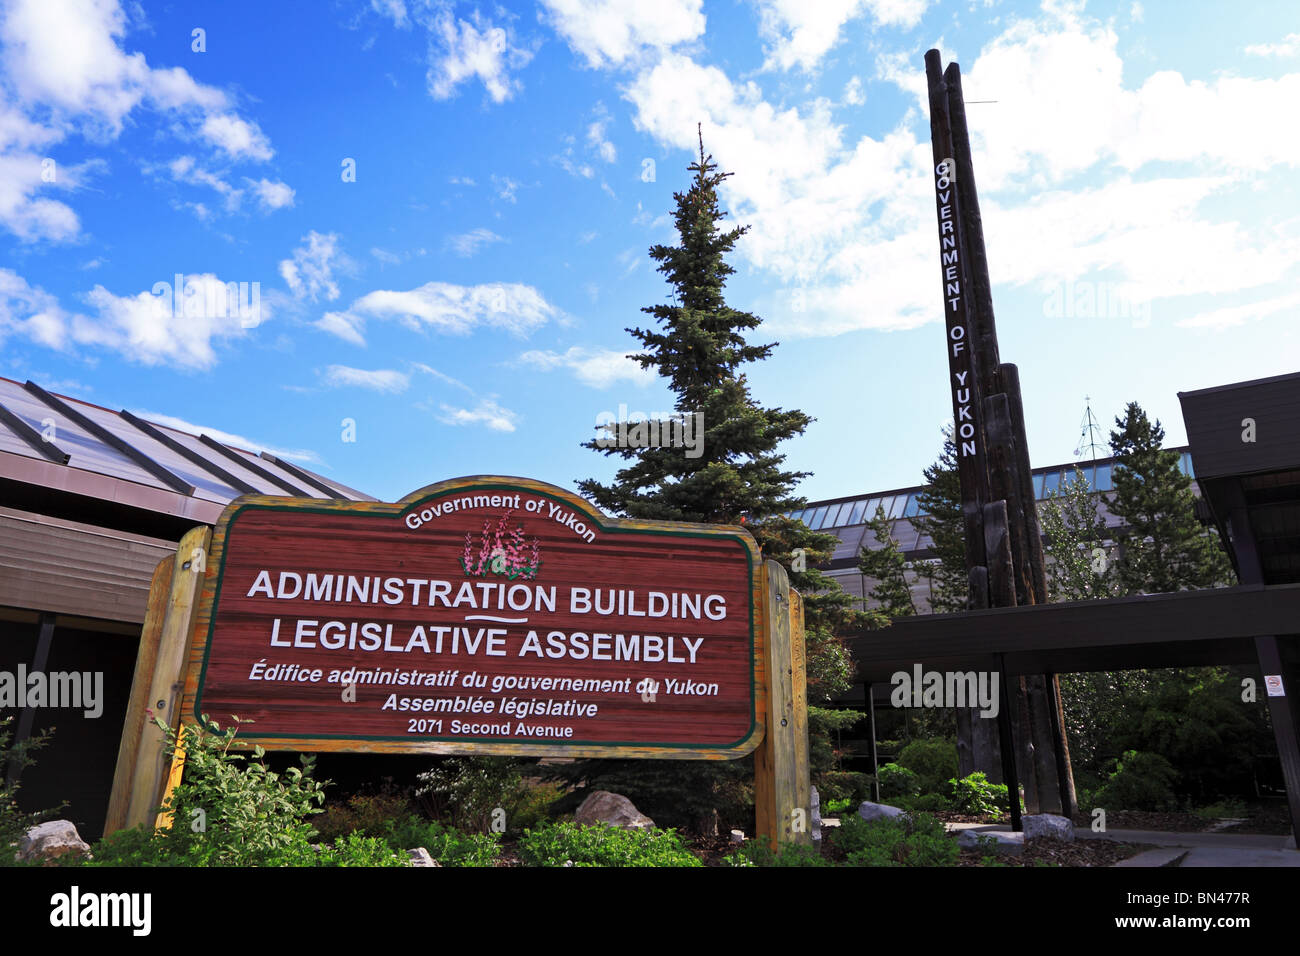 Government Of Yukon And Legislative Assembly Building In Whitehorse Stock Photo Alamy